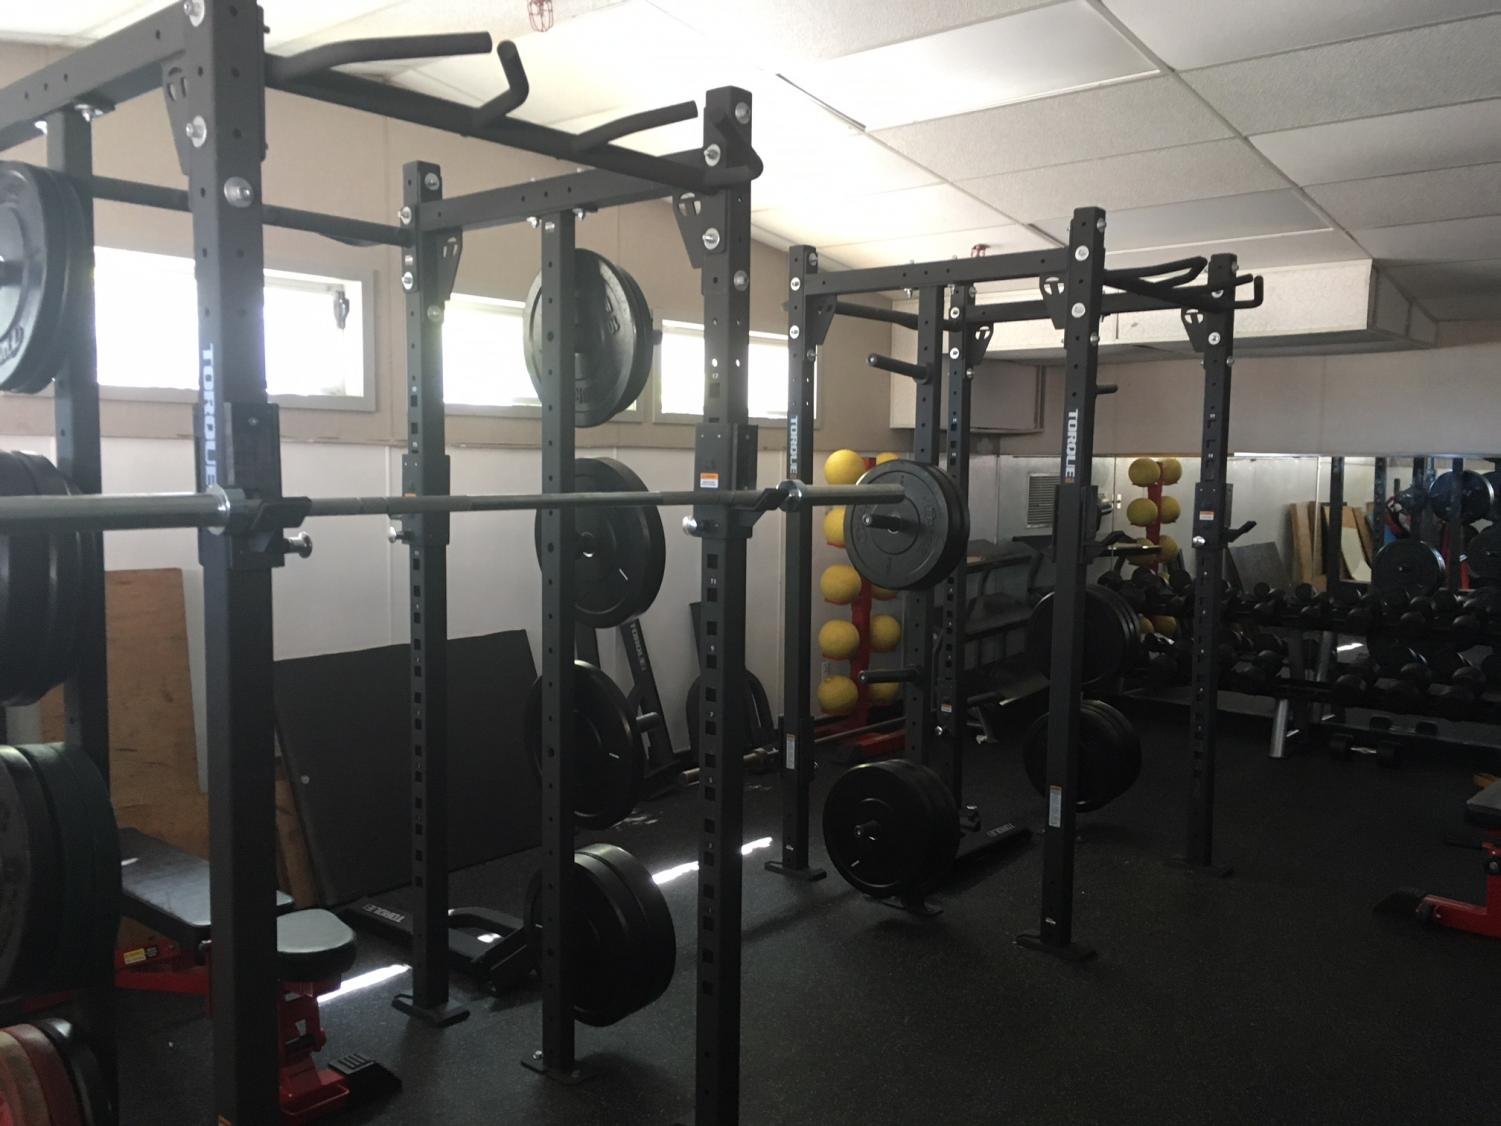 New+black+squat+racks+are+pushed+up+against+the+south+wall